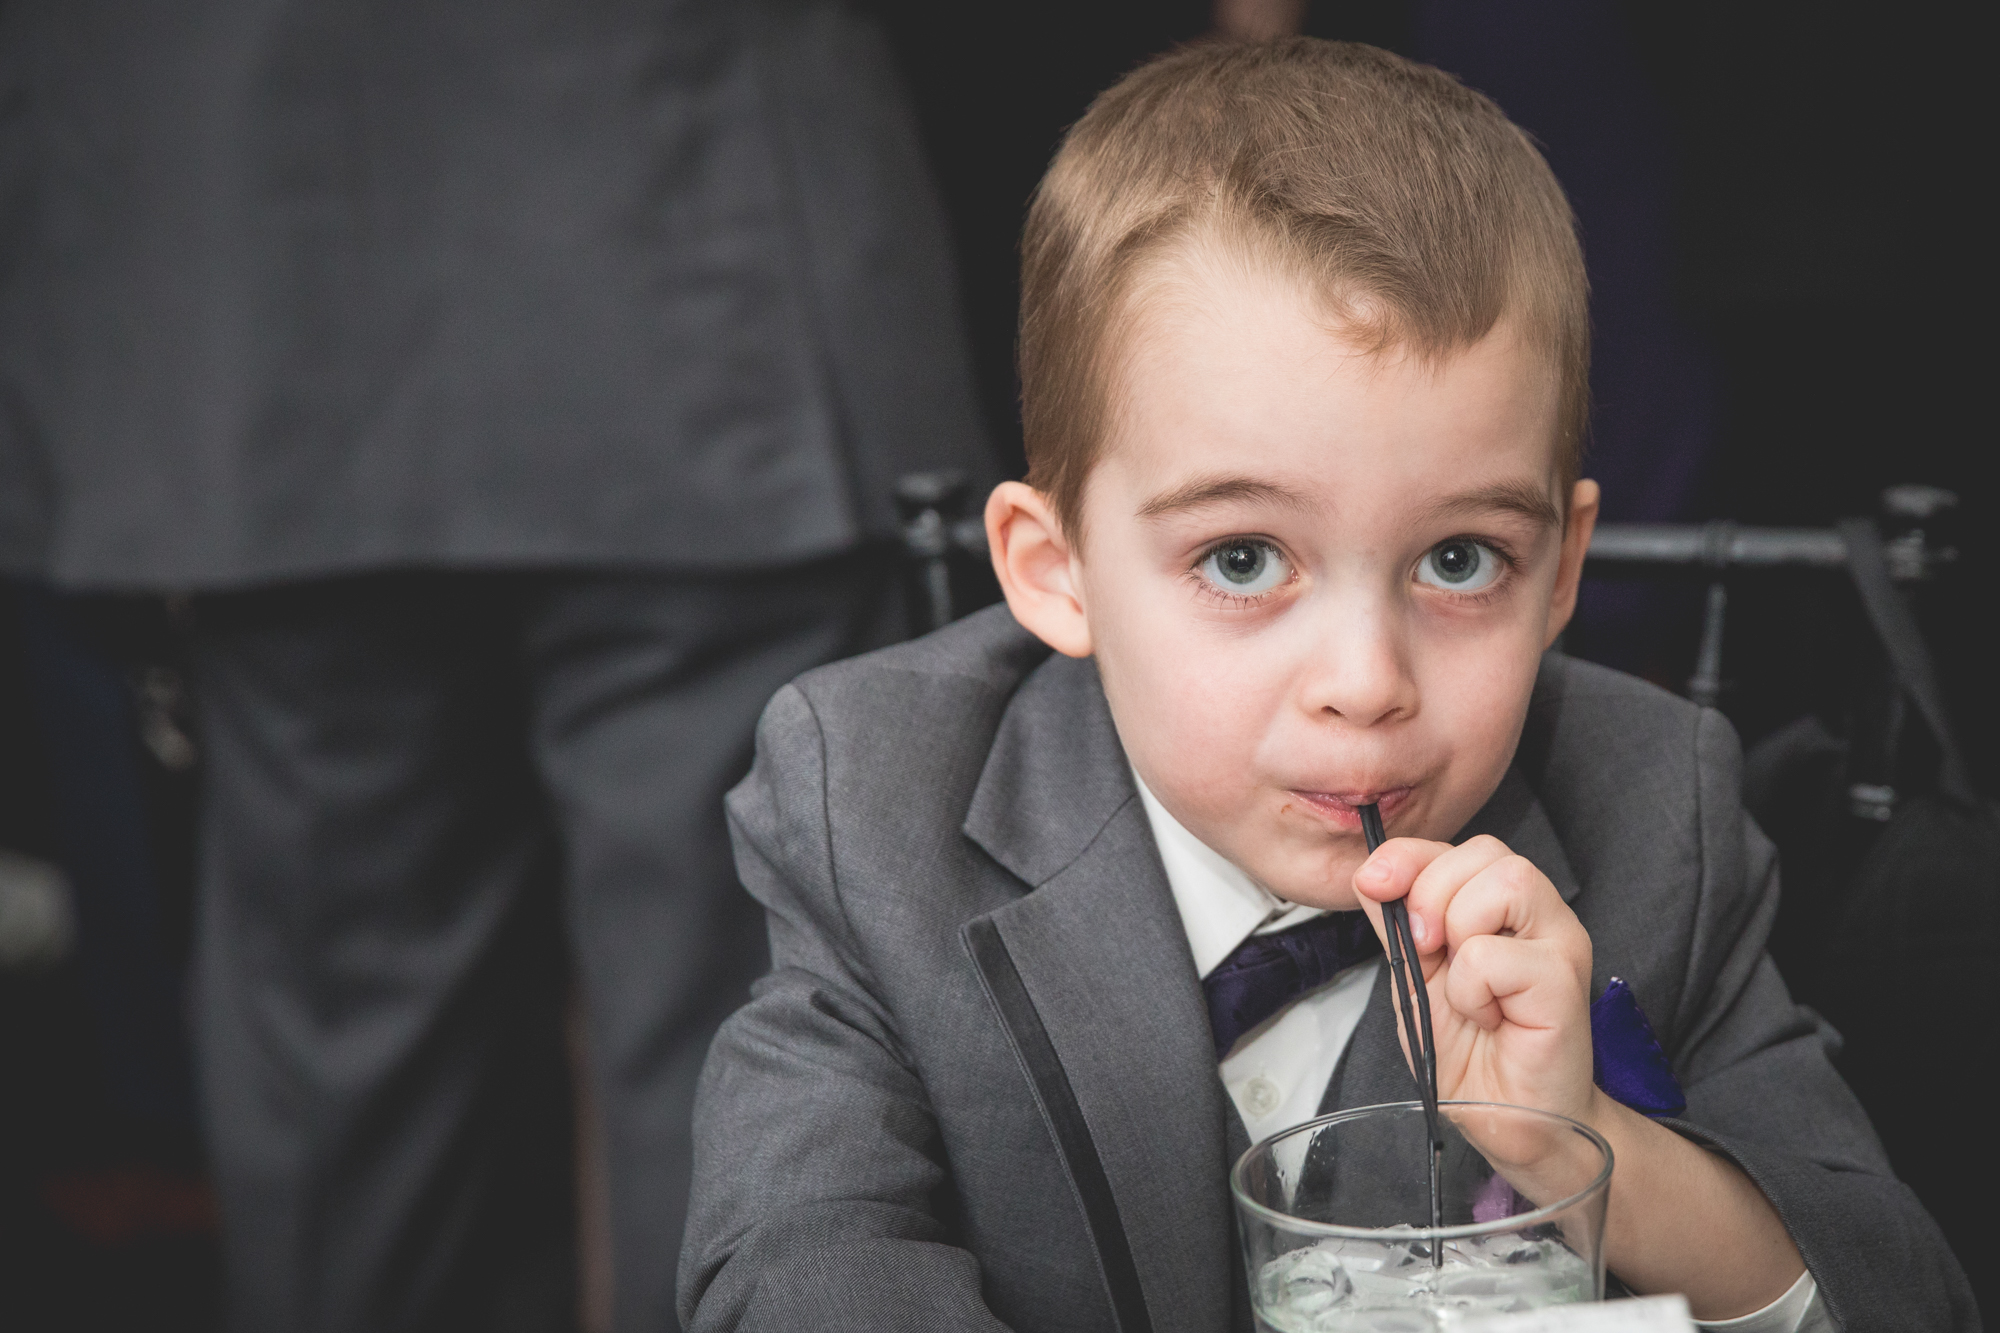 kid-at-a-wedding.jpg